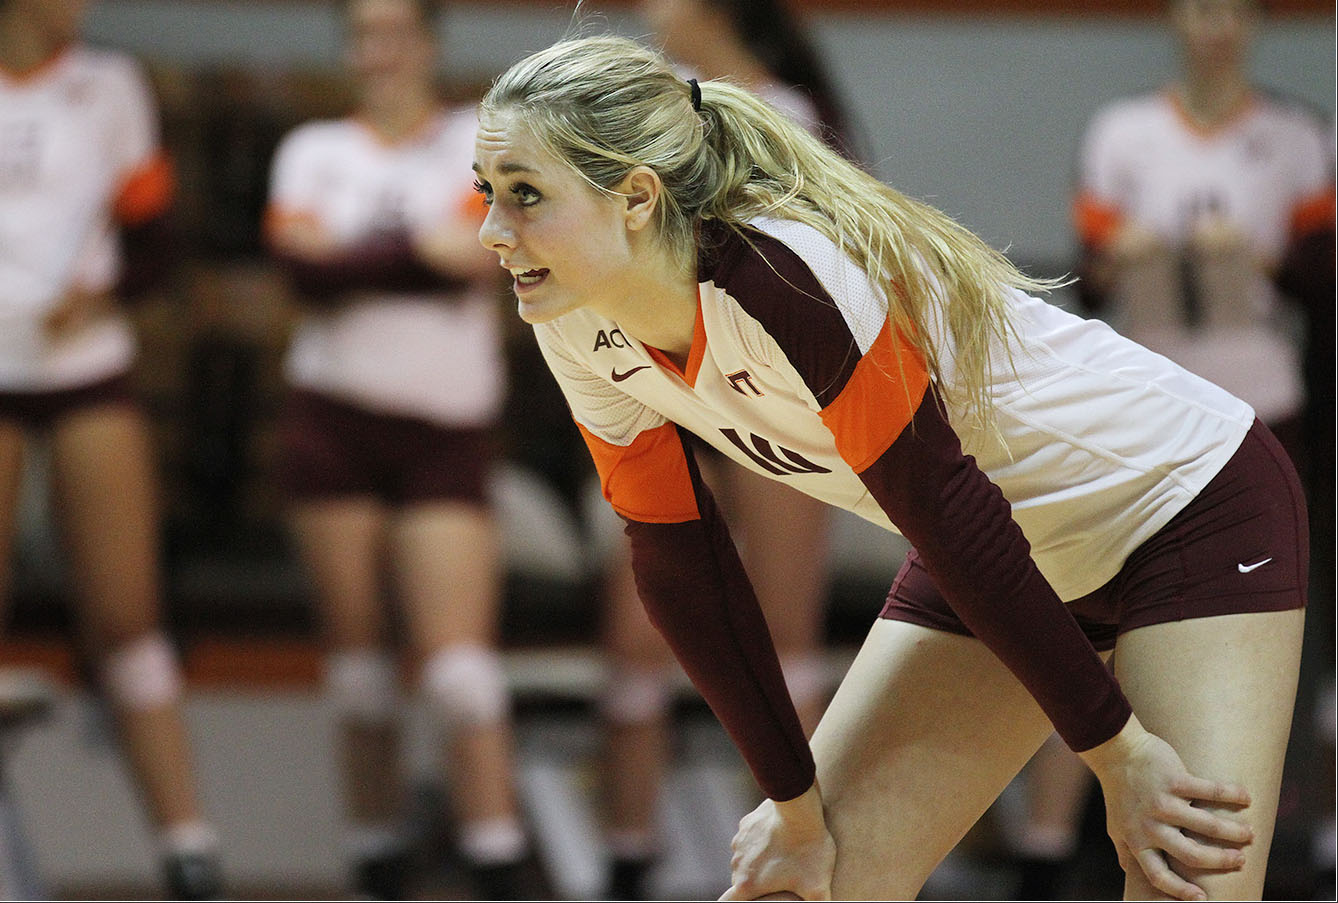 A Hokie volleyball player gets set for action. (photo by Ivan Morozov)